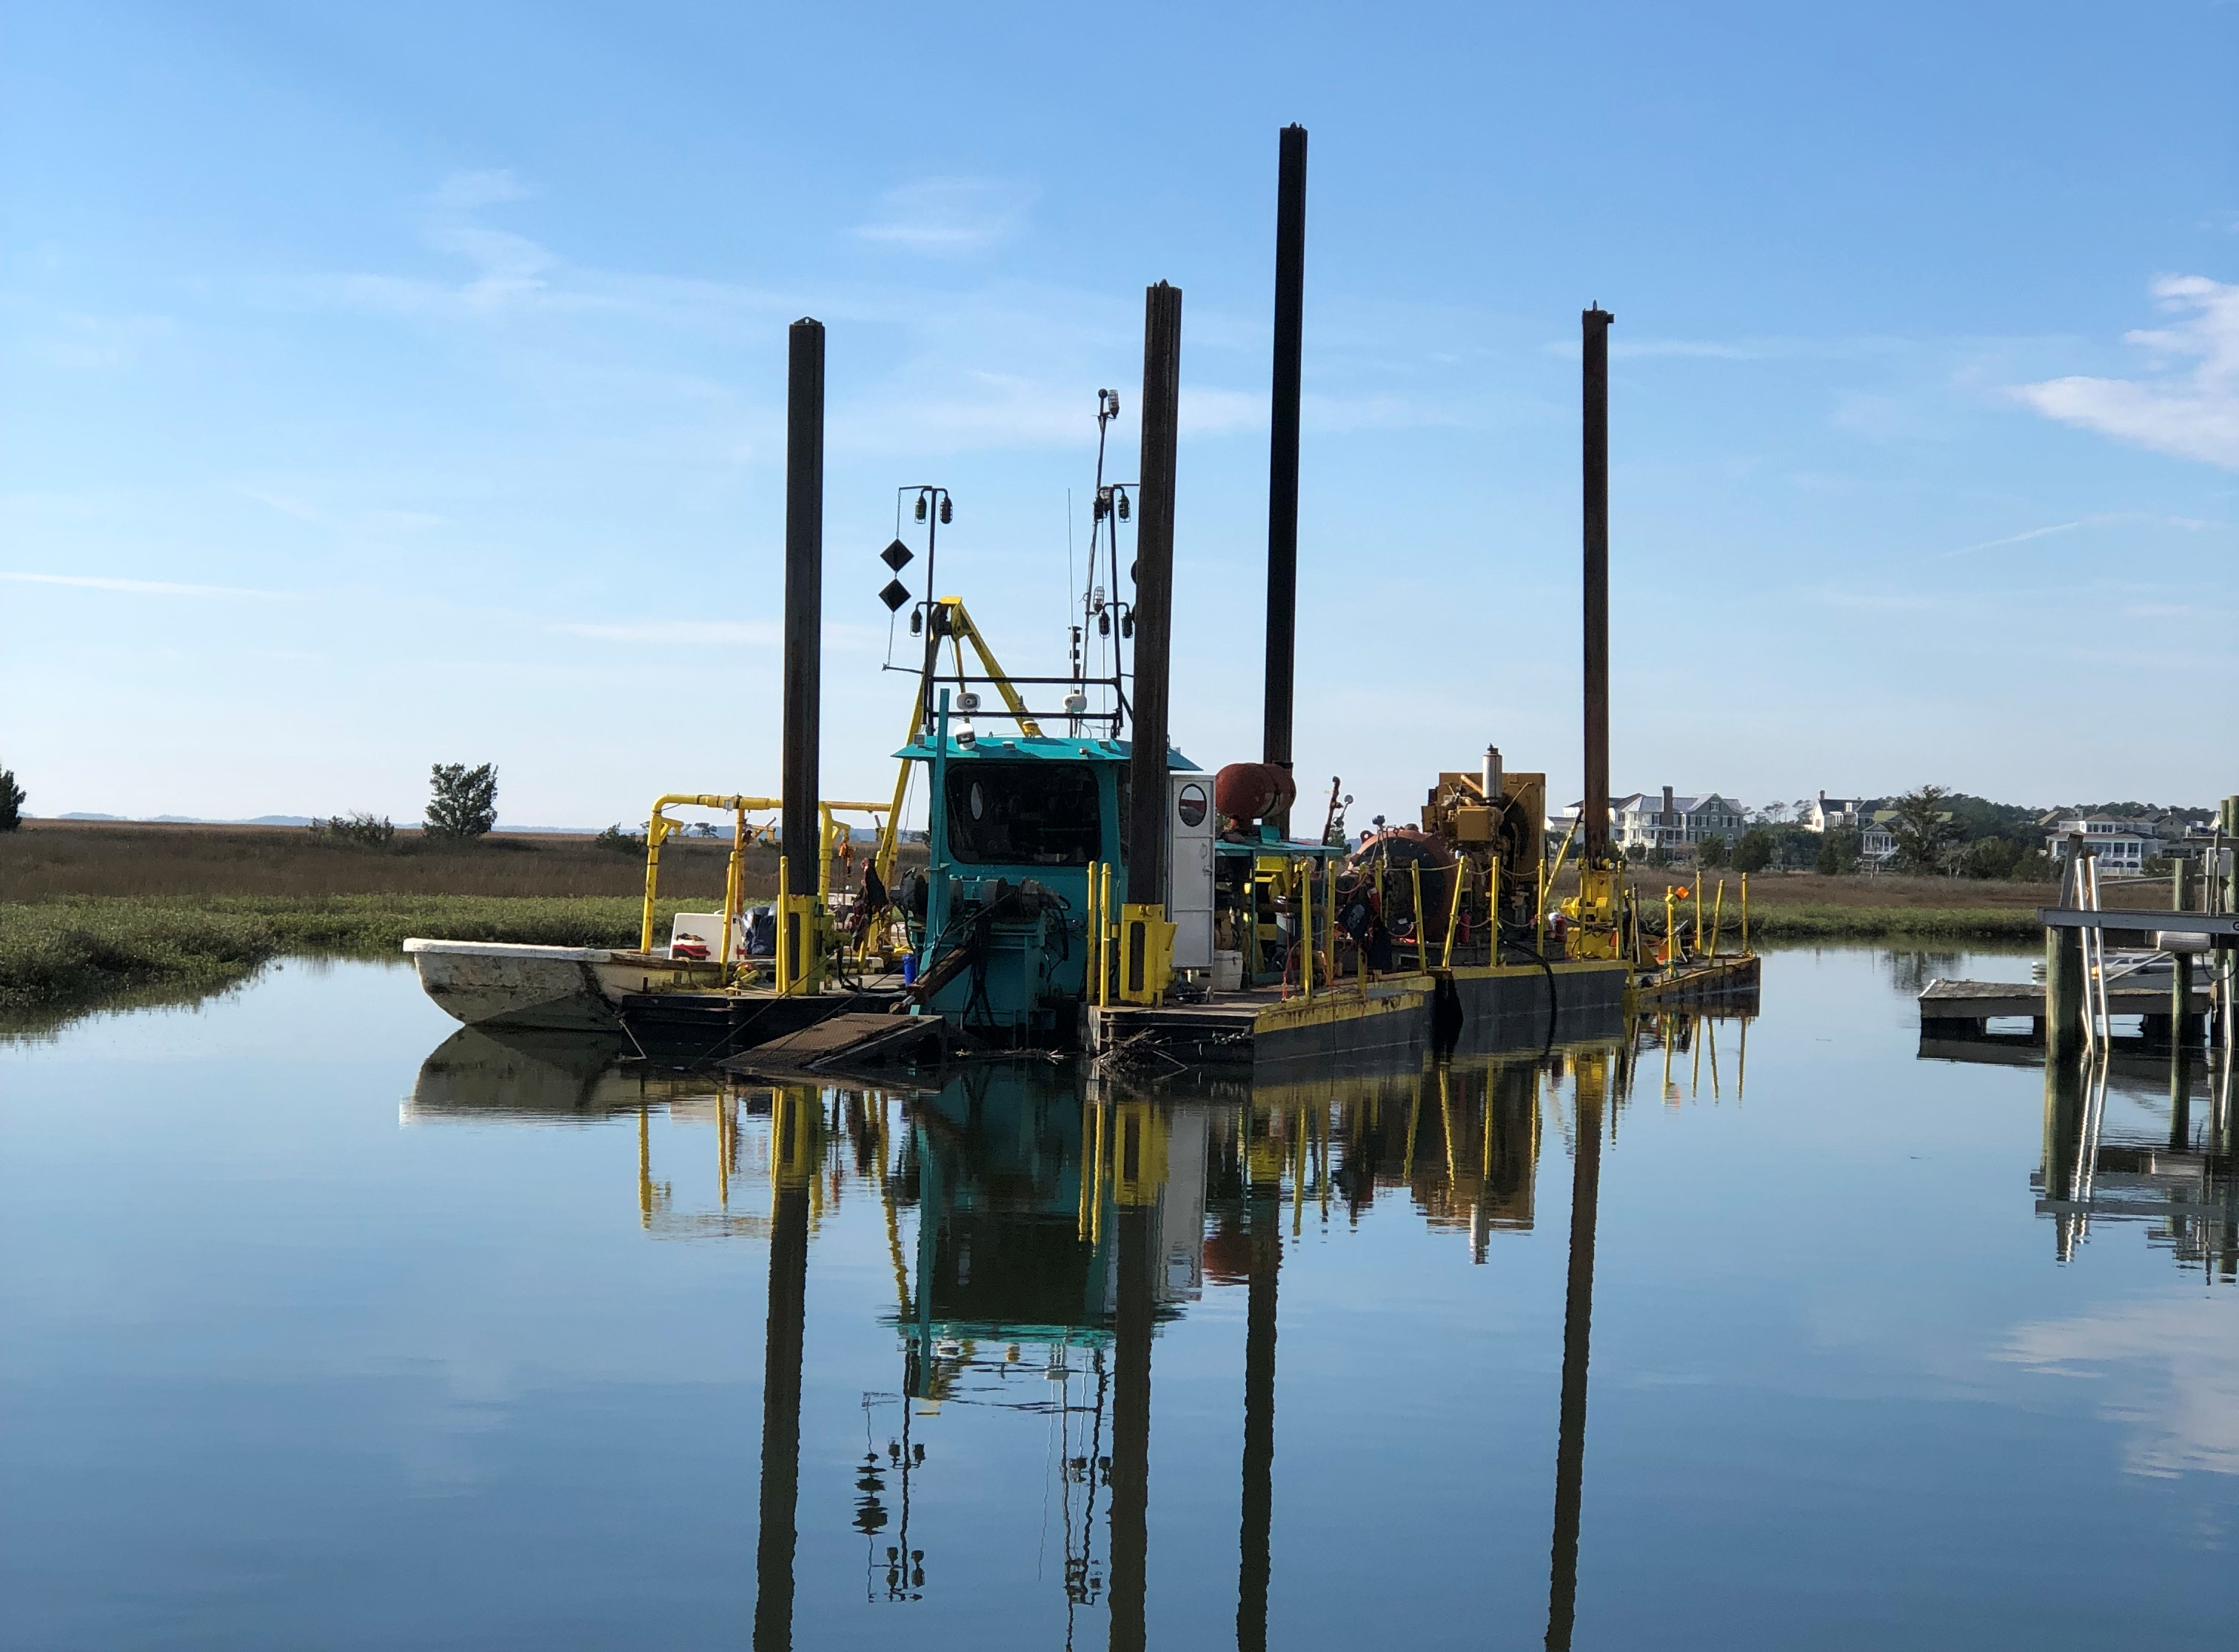 Canal Dredging Update – Wednesday, December 12, 2018